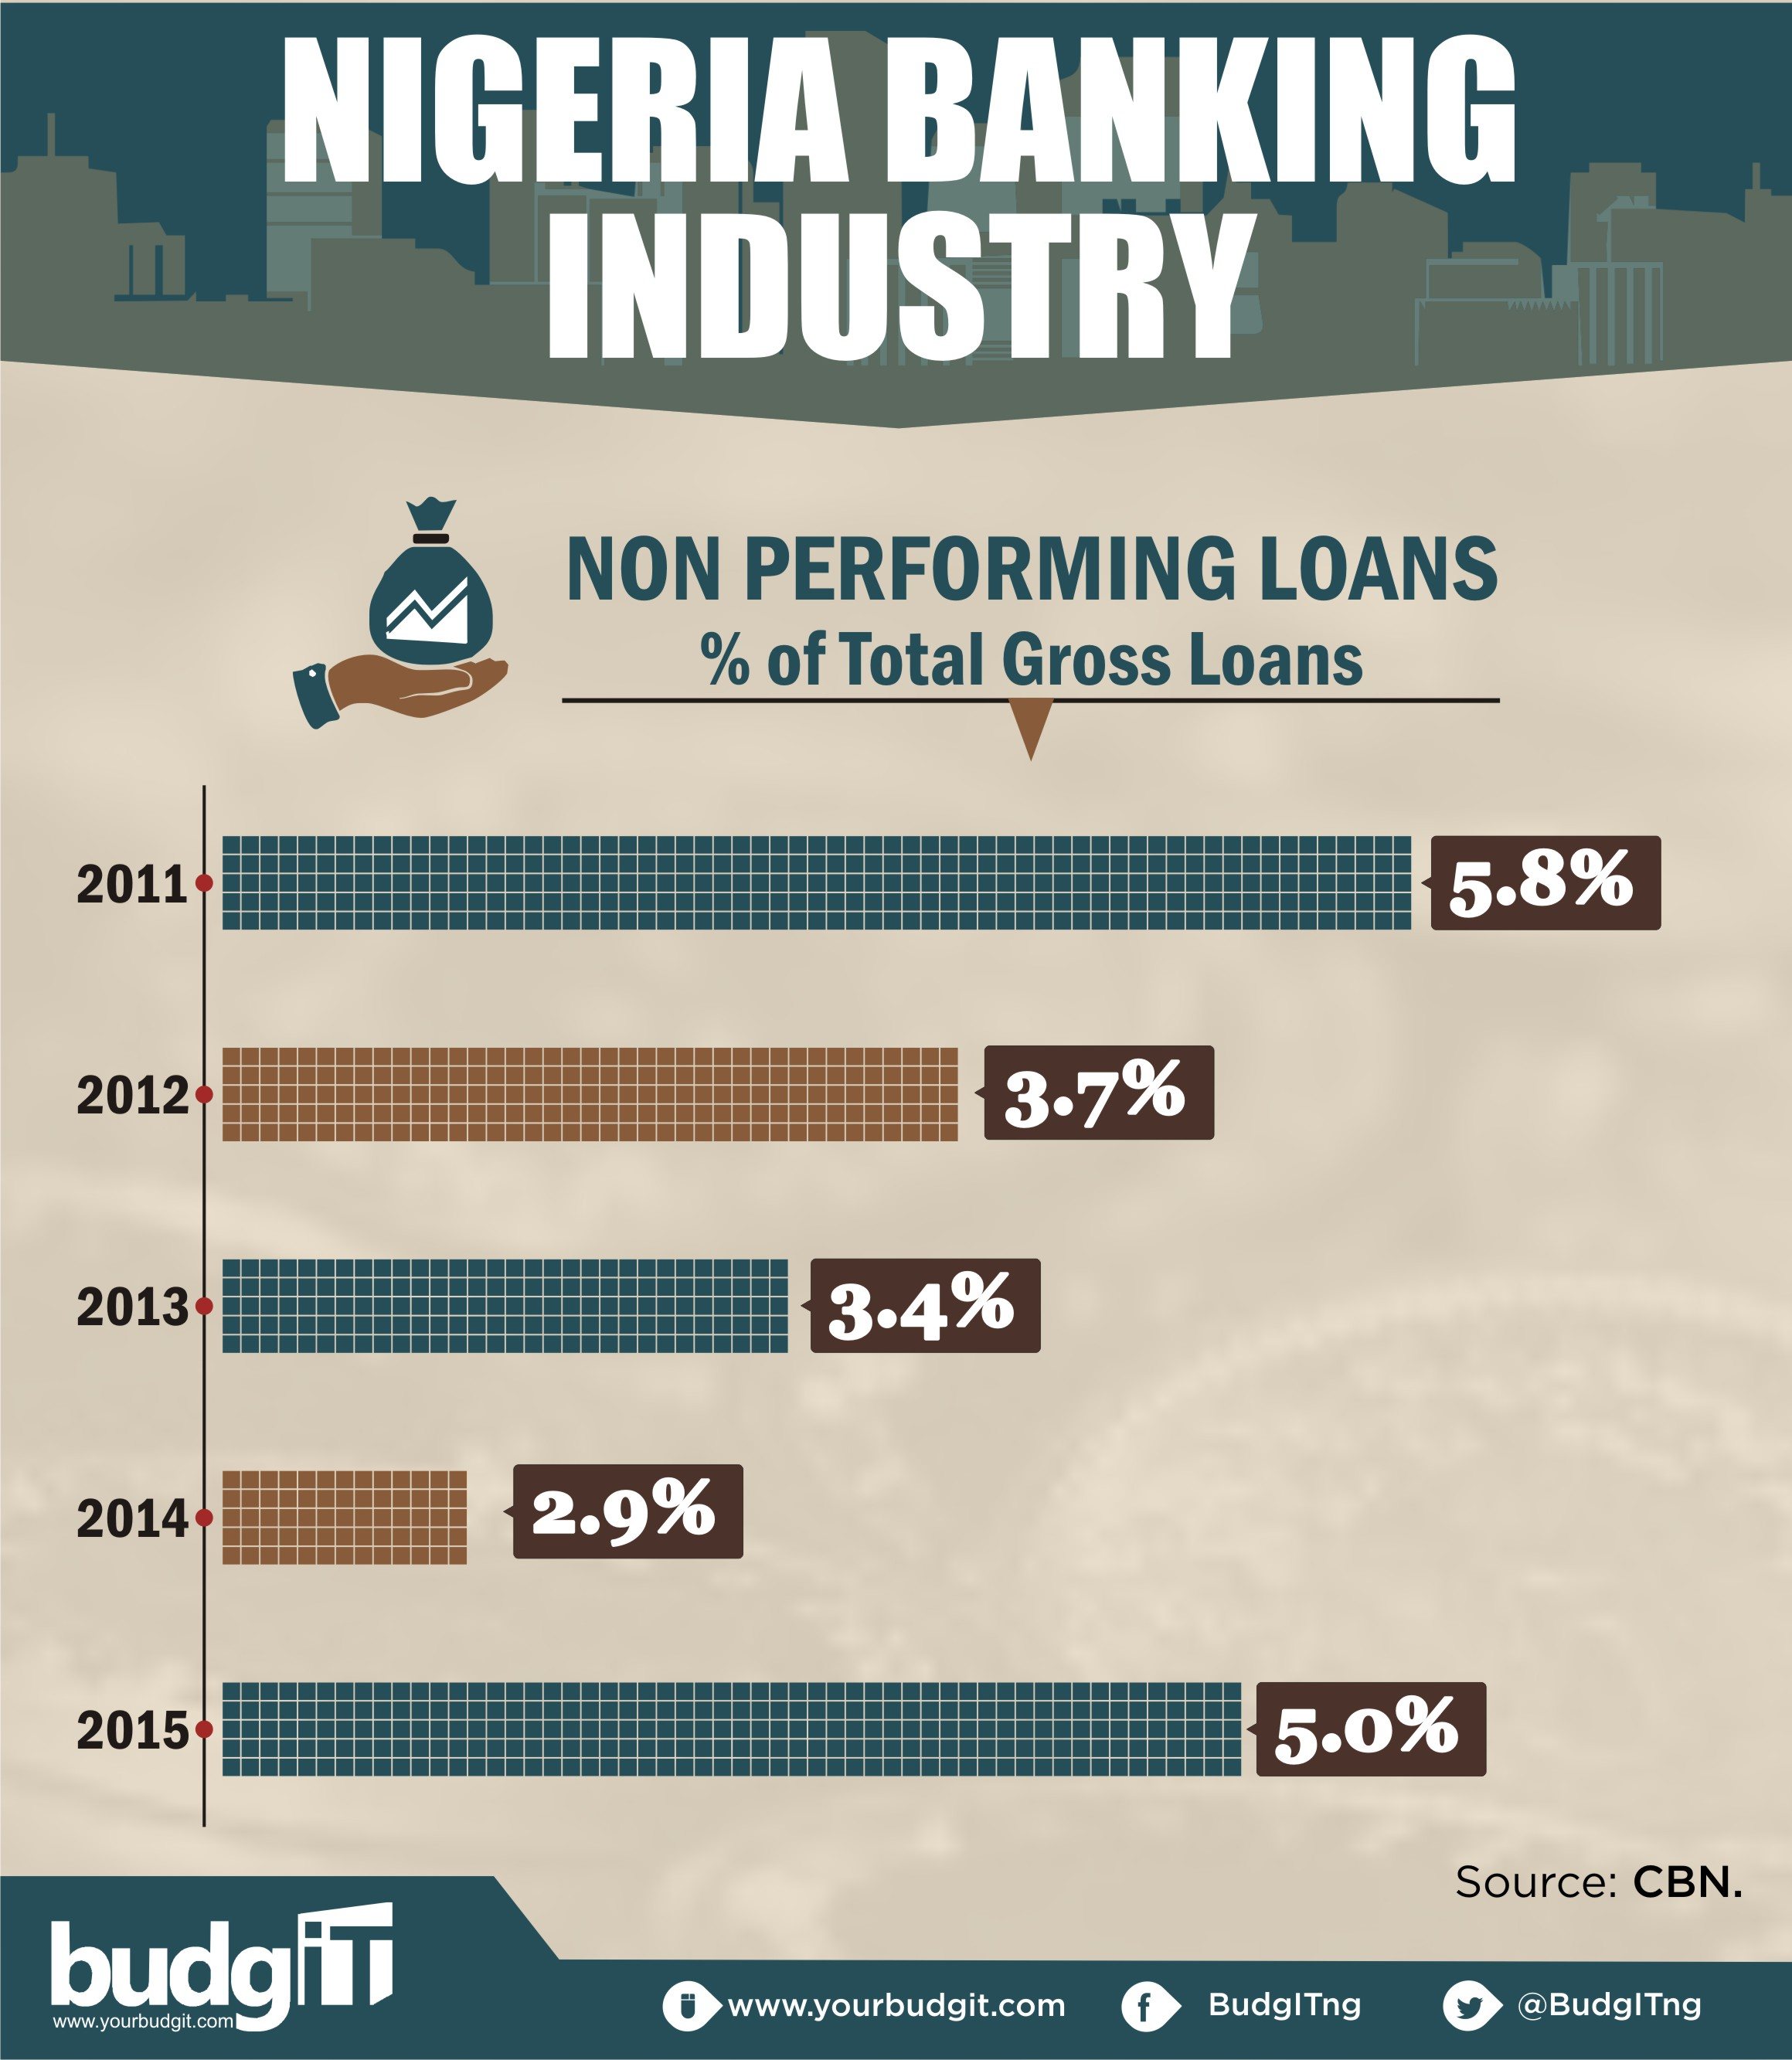 bank of industry nigeria Bank of industry, nigeria, lagos, nigeria 17k likes global ratings:-  agusto &  co (a+)  fitch ratings-(aa+), credit performance   moody's investors.